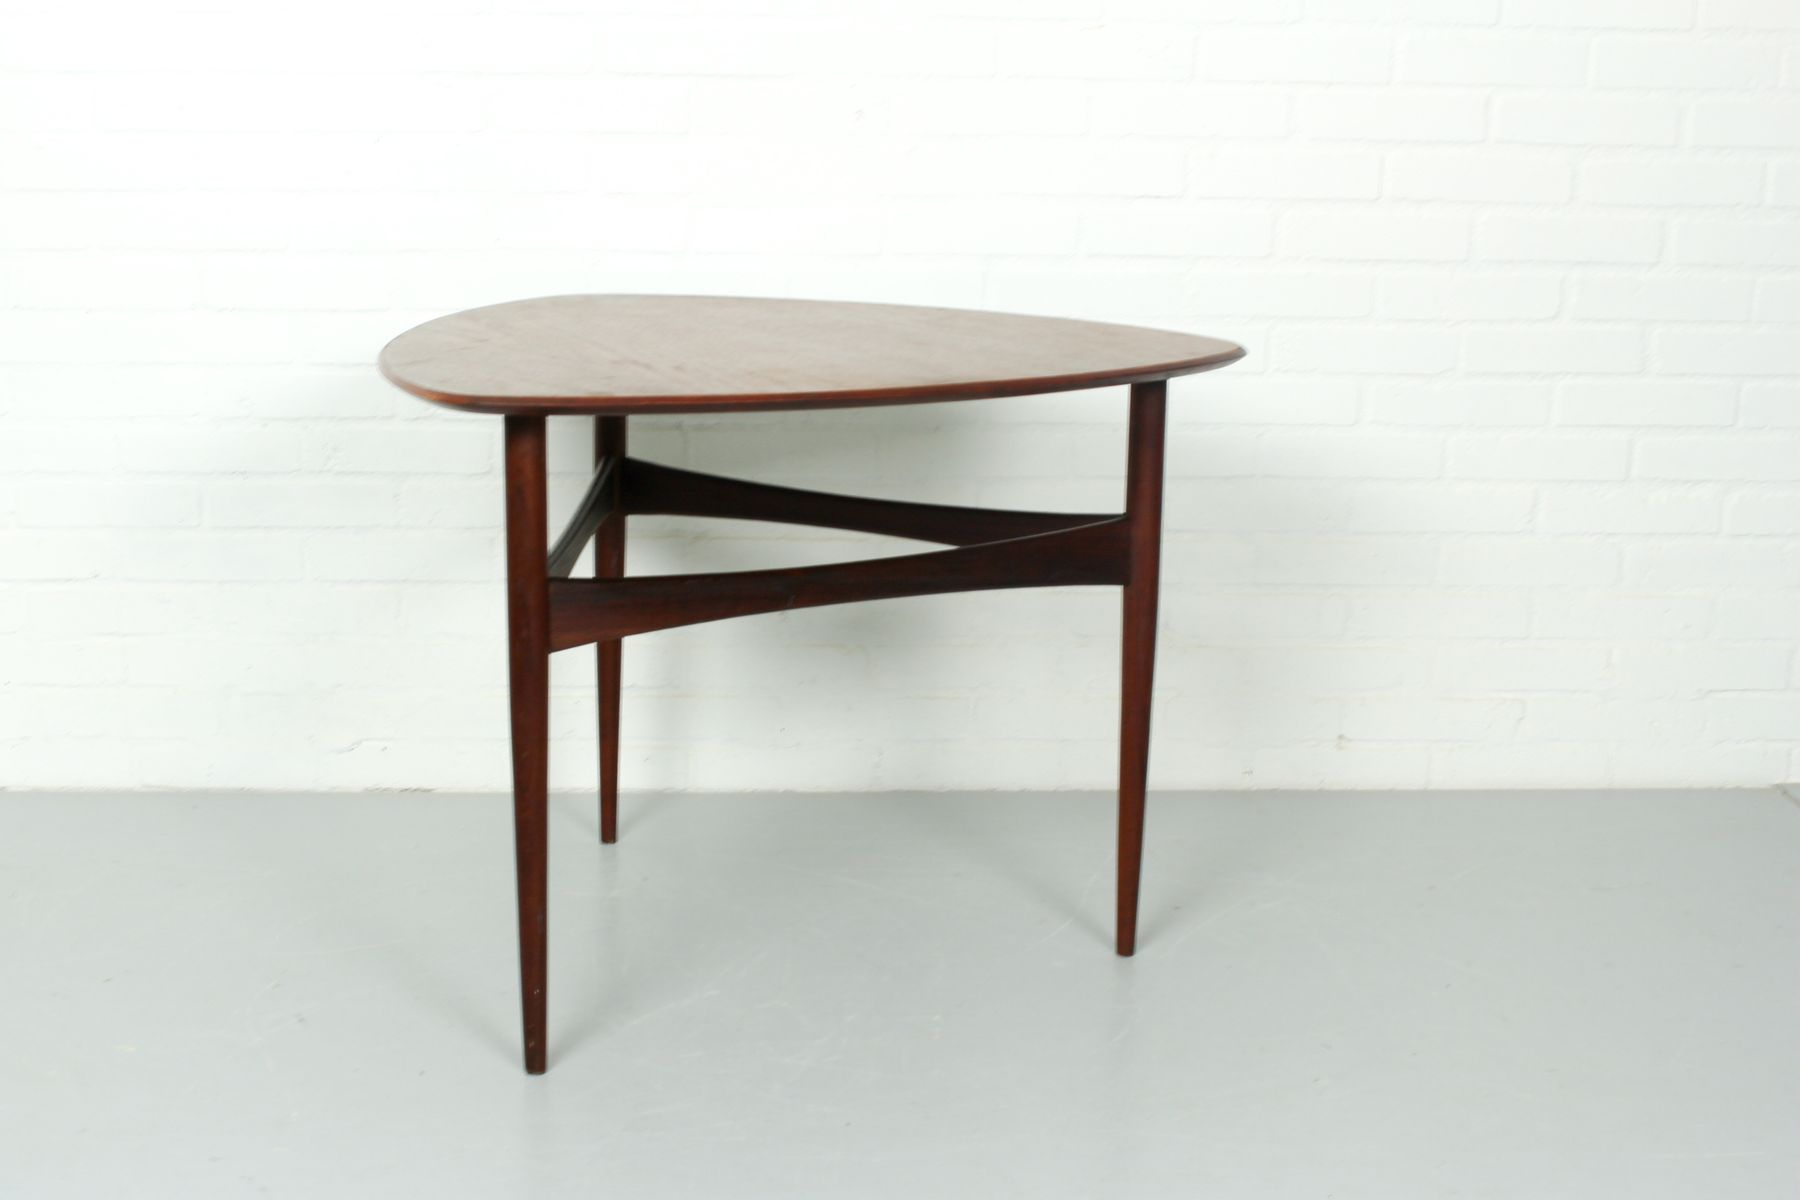 Vintage Danish Teak Side Table with a Triangular Top for sale at